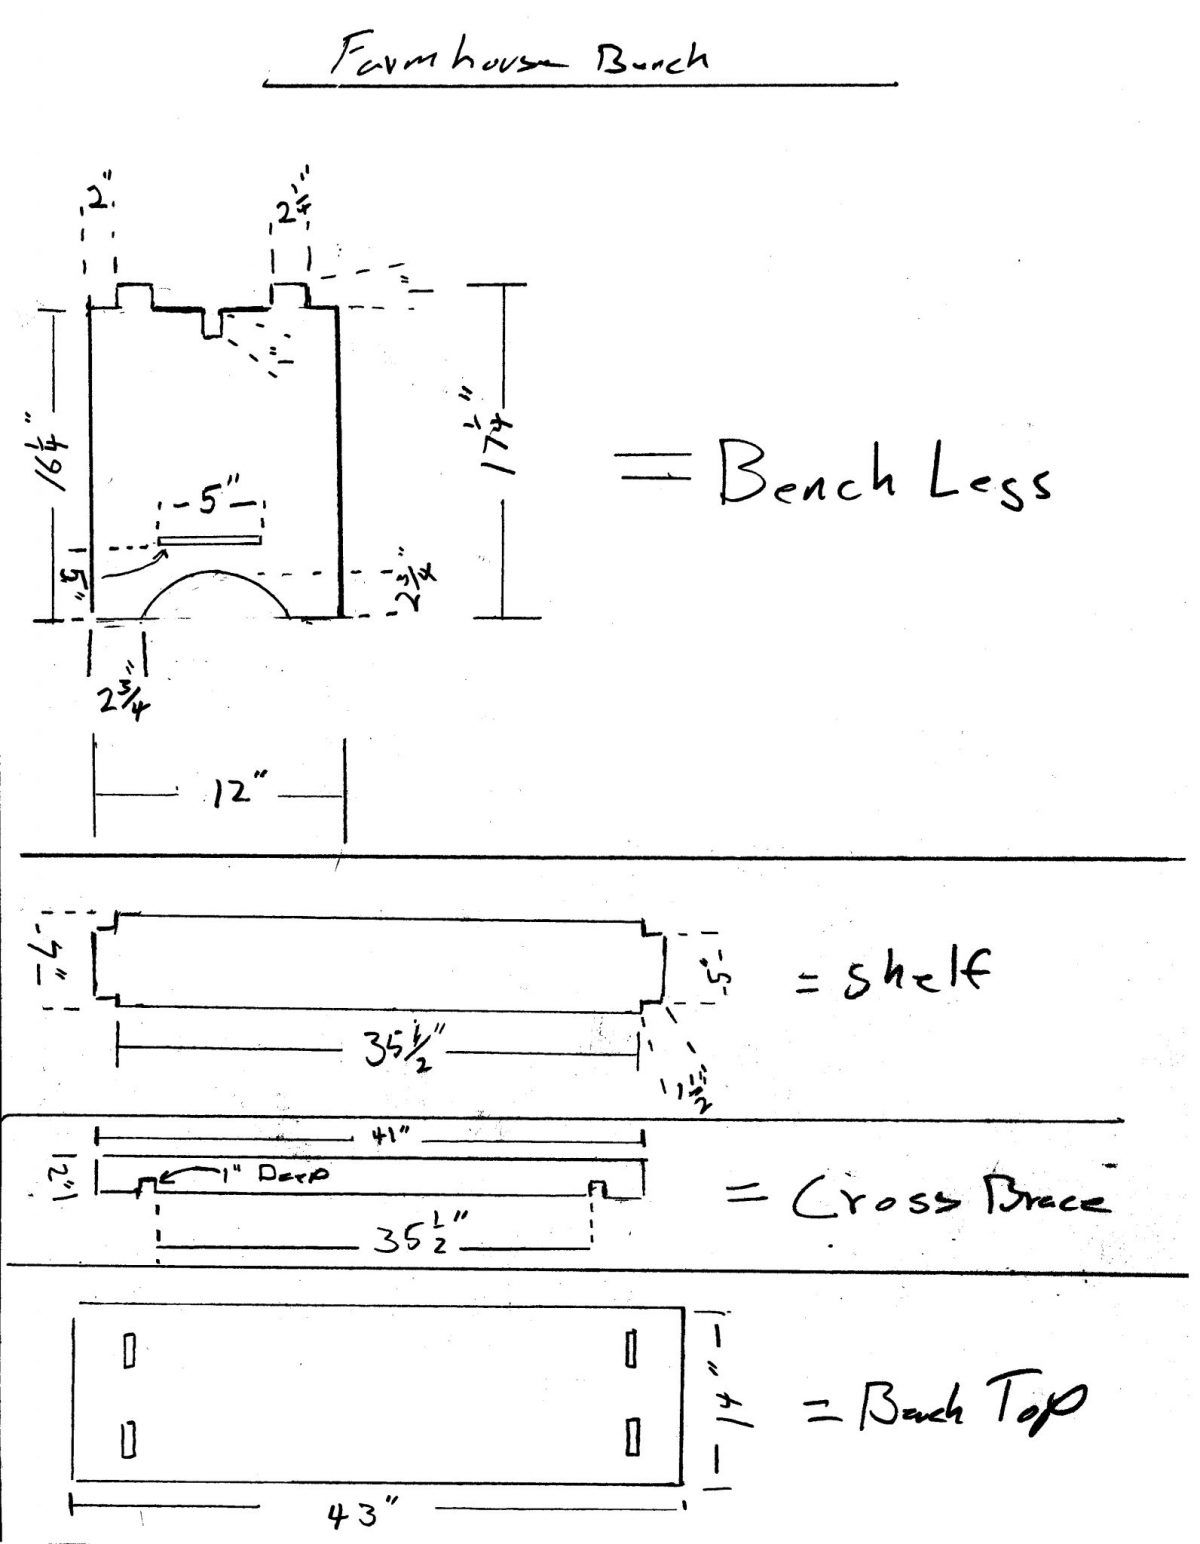 Bench Design Plans Longview Woodworking With Jon Peters